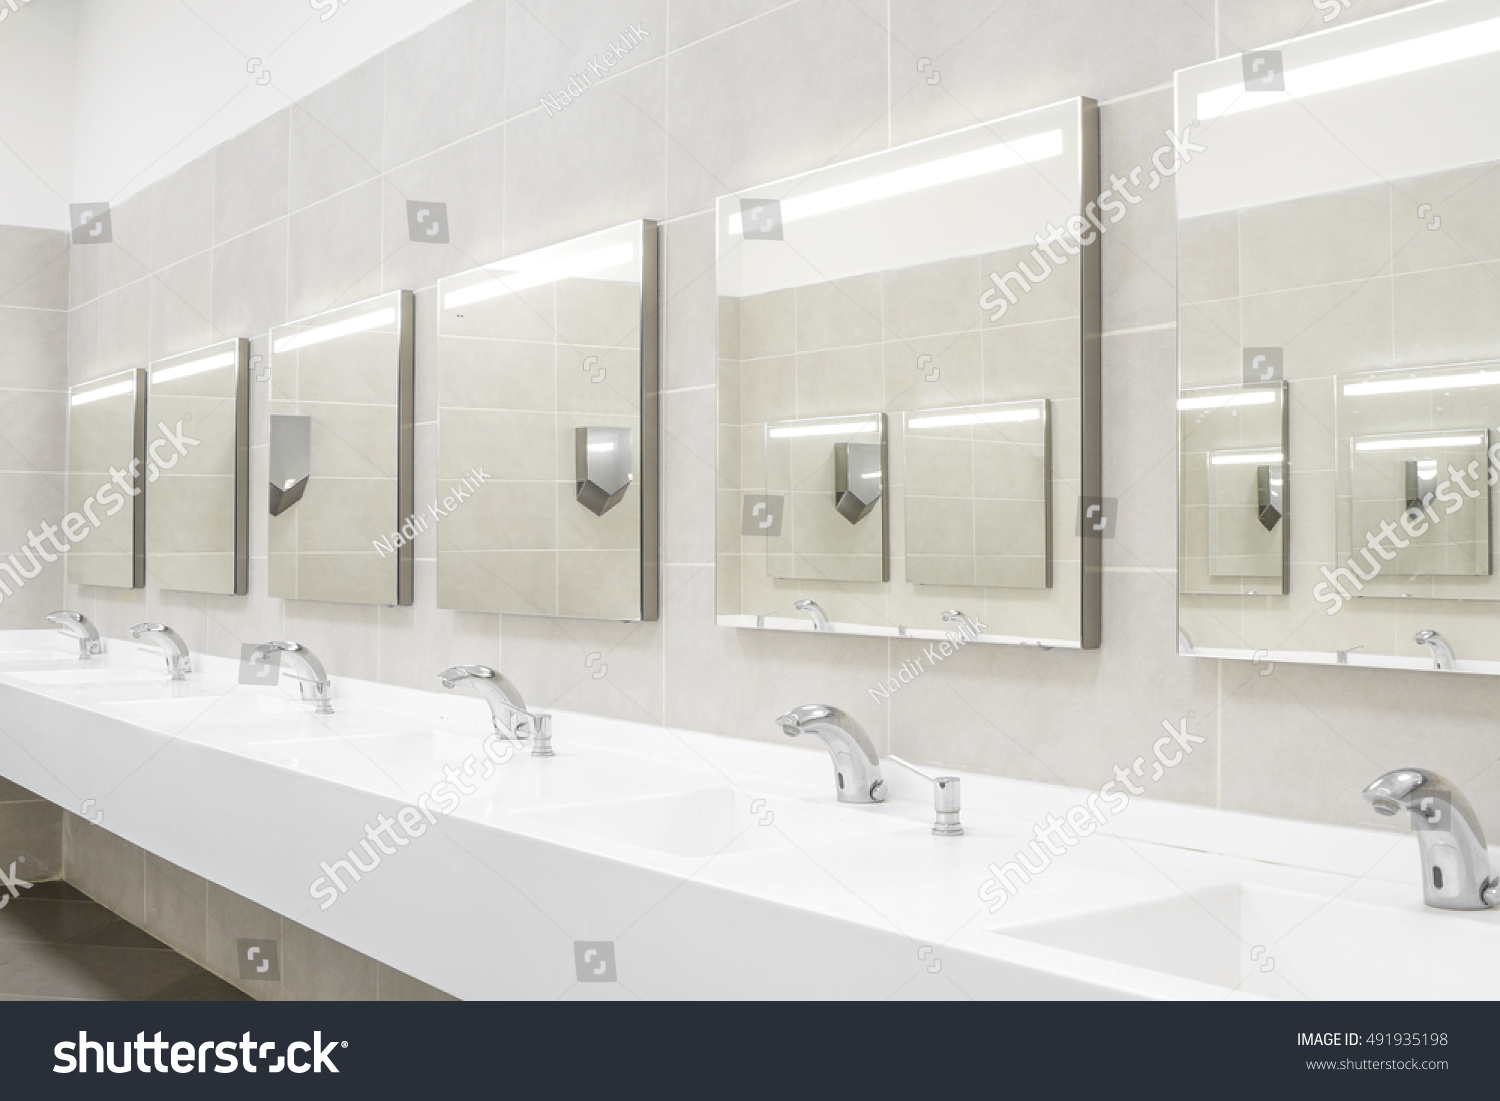 Commercial Bathroom Washing Hands Stock Photo & Image (Royalty-Free ...